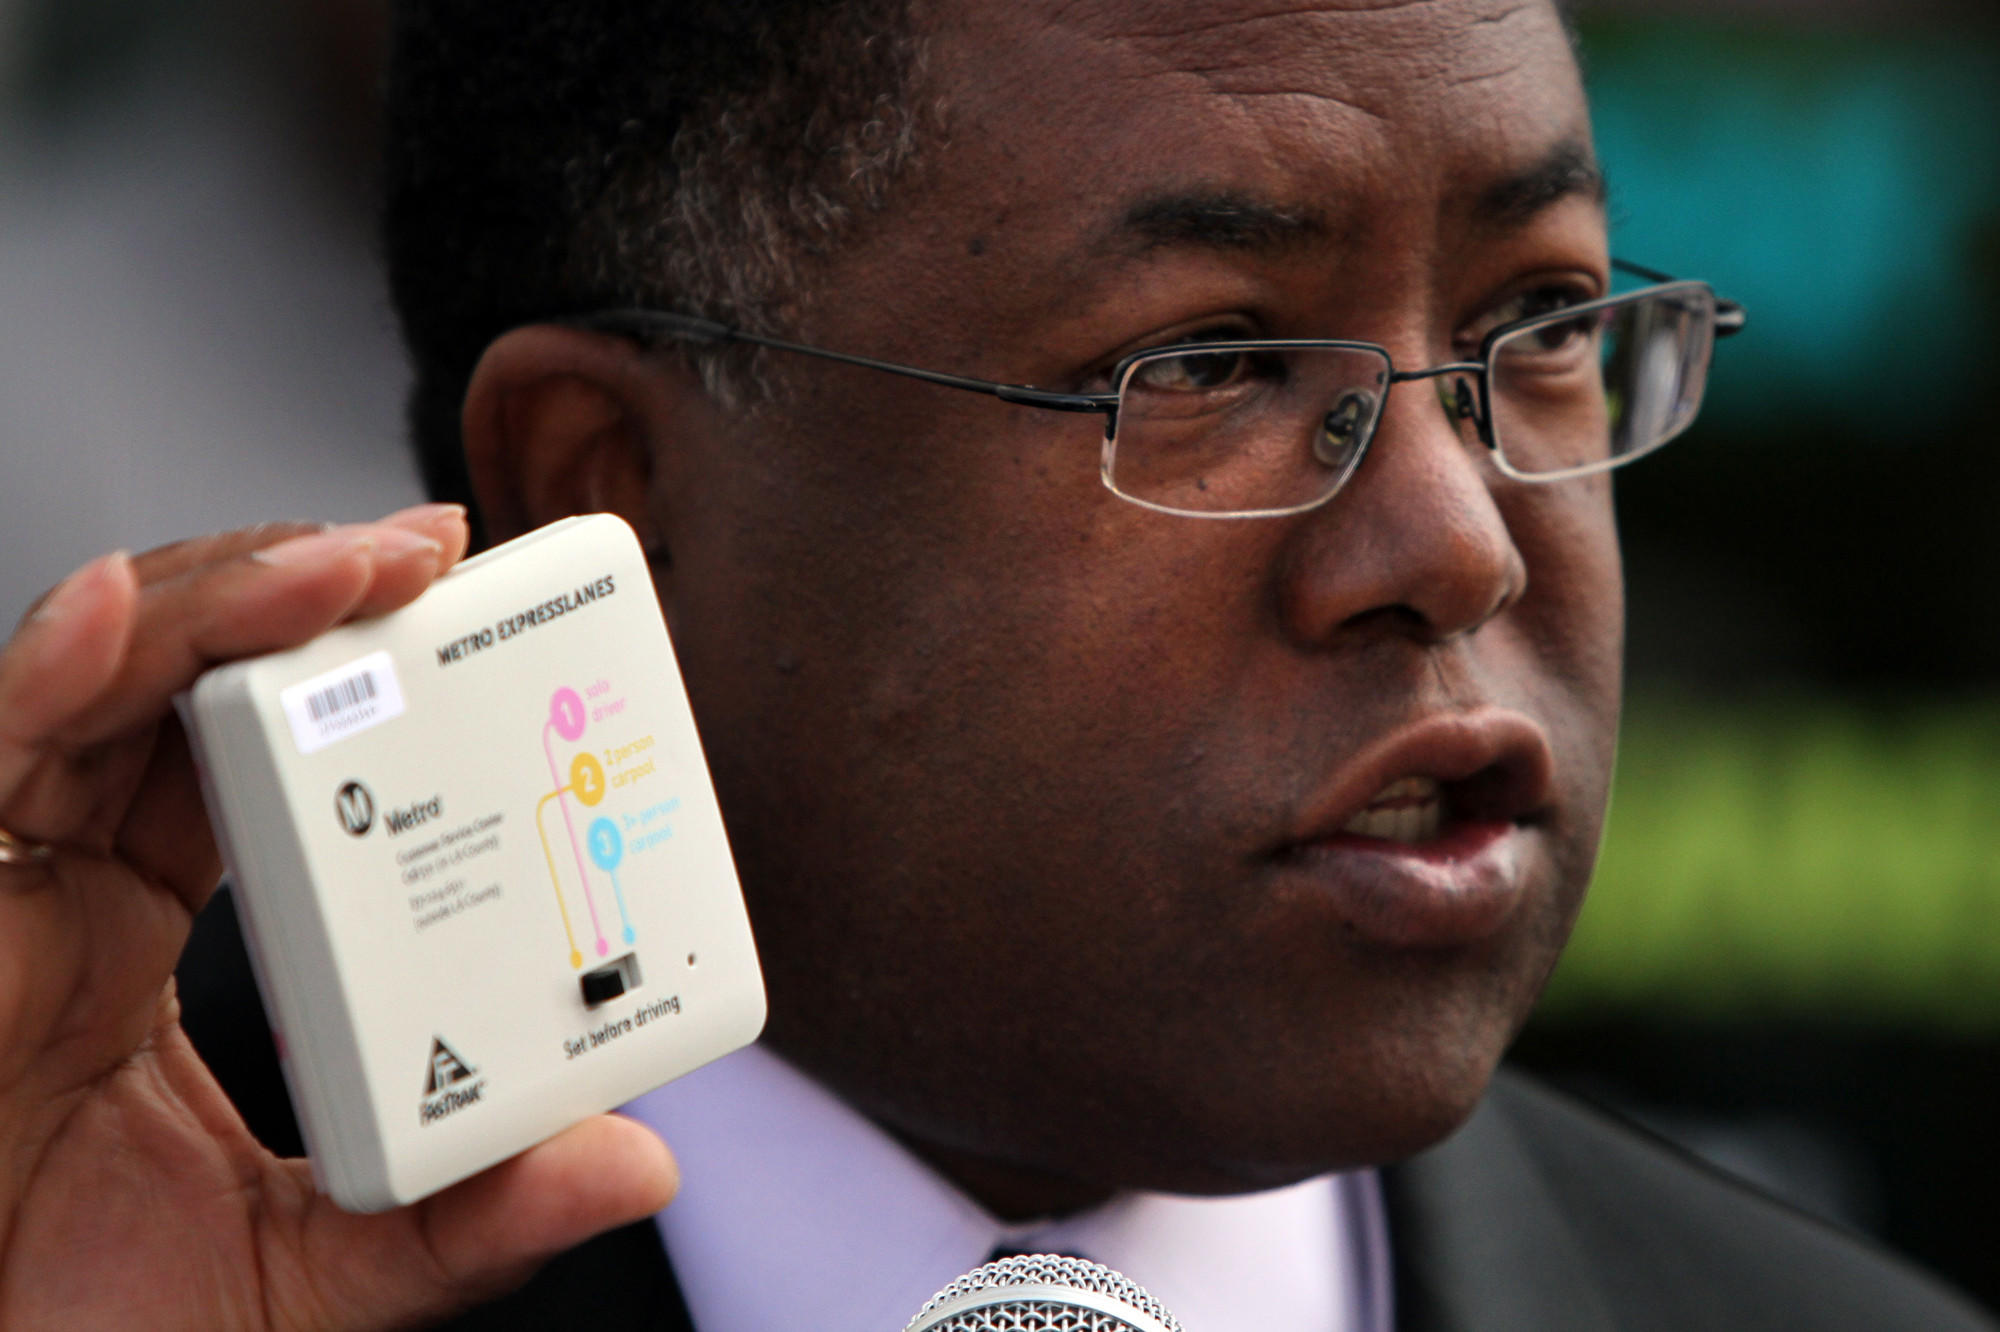 Los Angeles County Supervisor Mark Ridley-Thomas shows a FasTrak device in 2012.